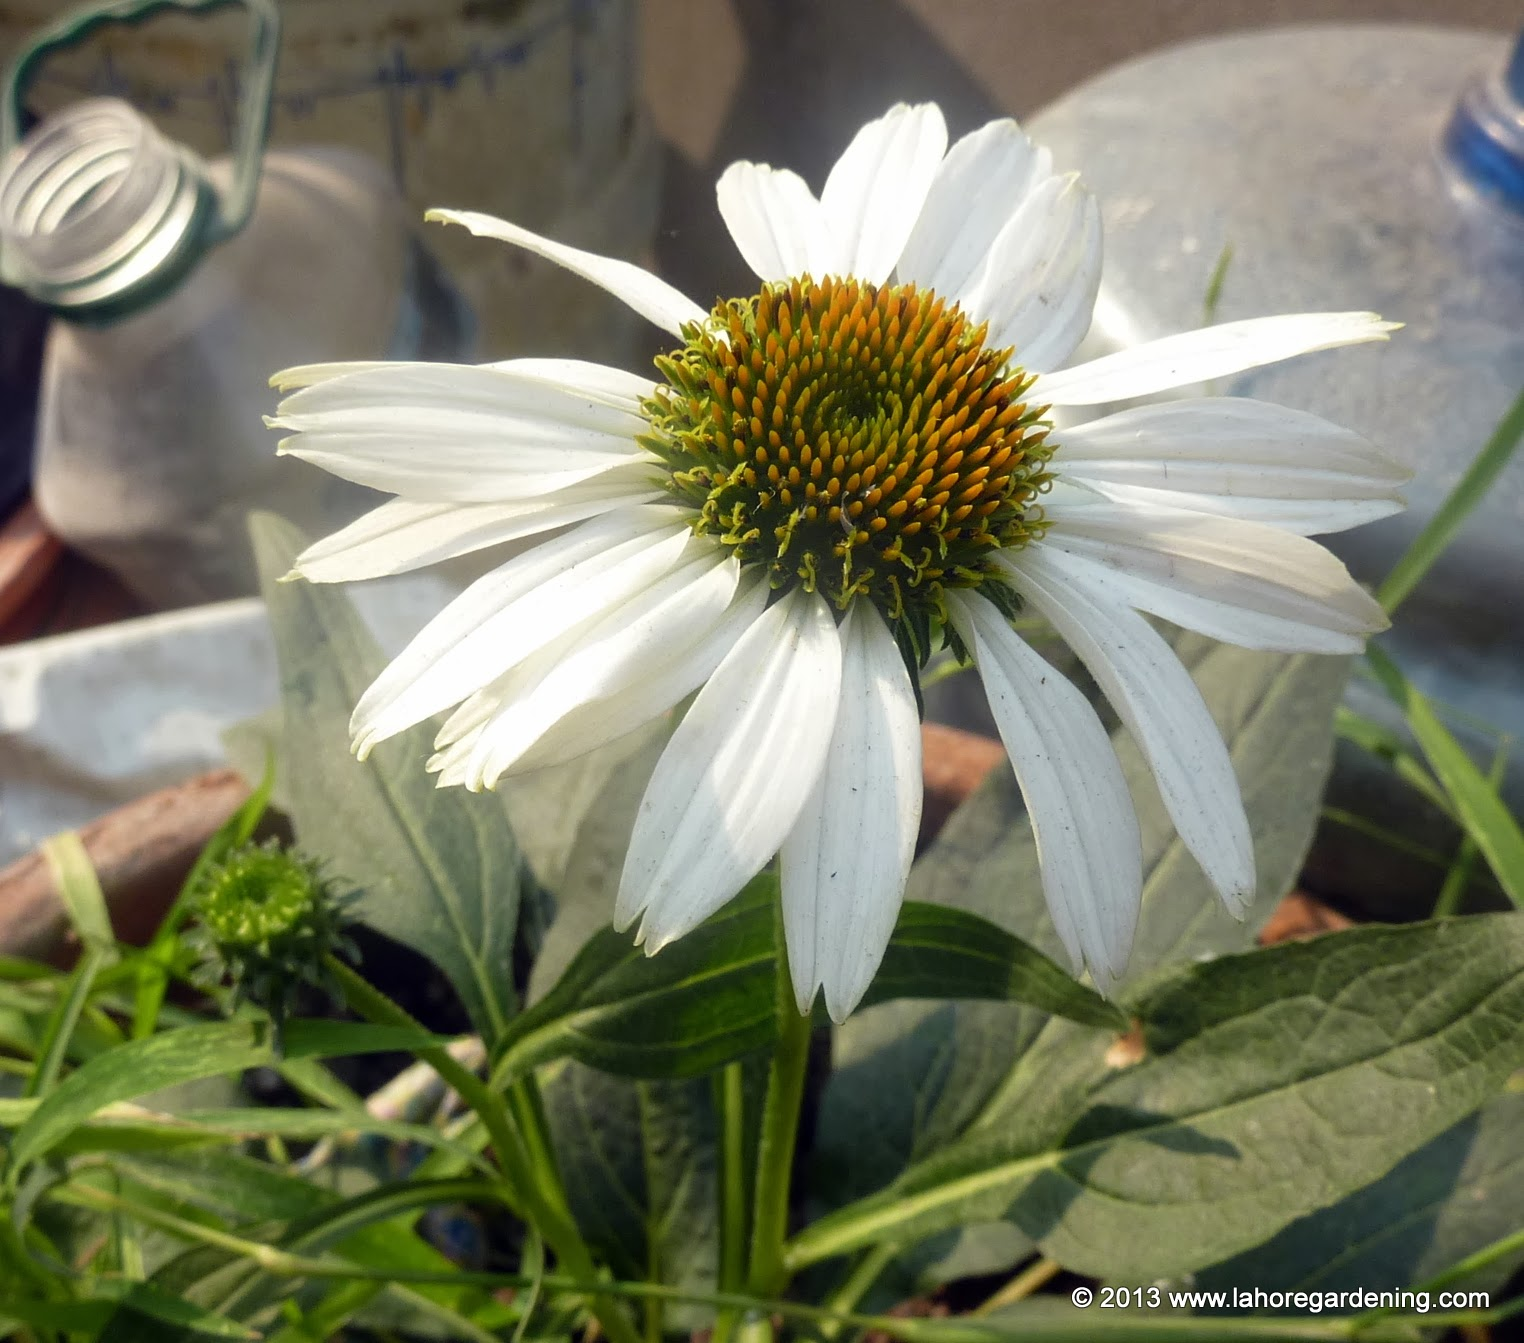 Petals Are Not Drooping For Echinacea